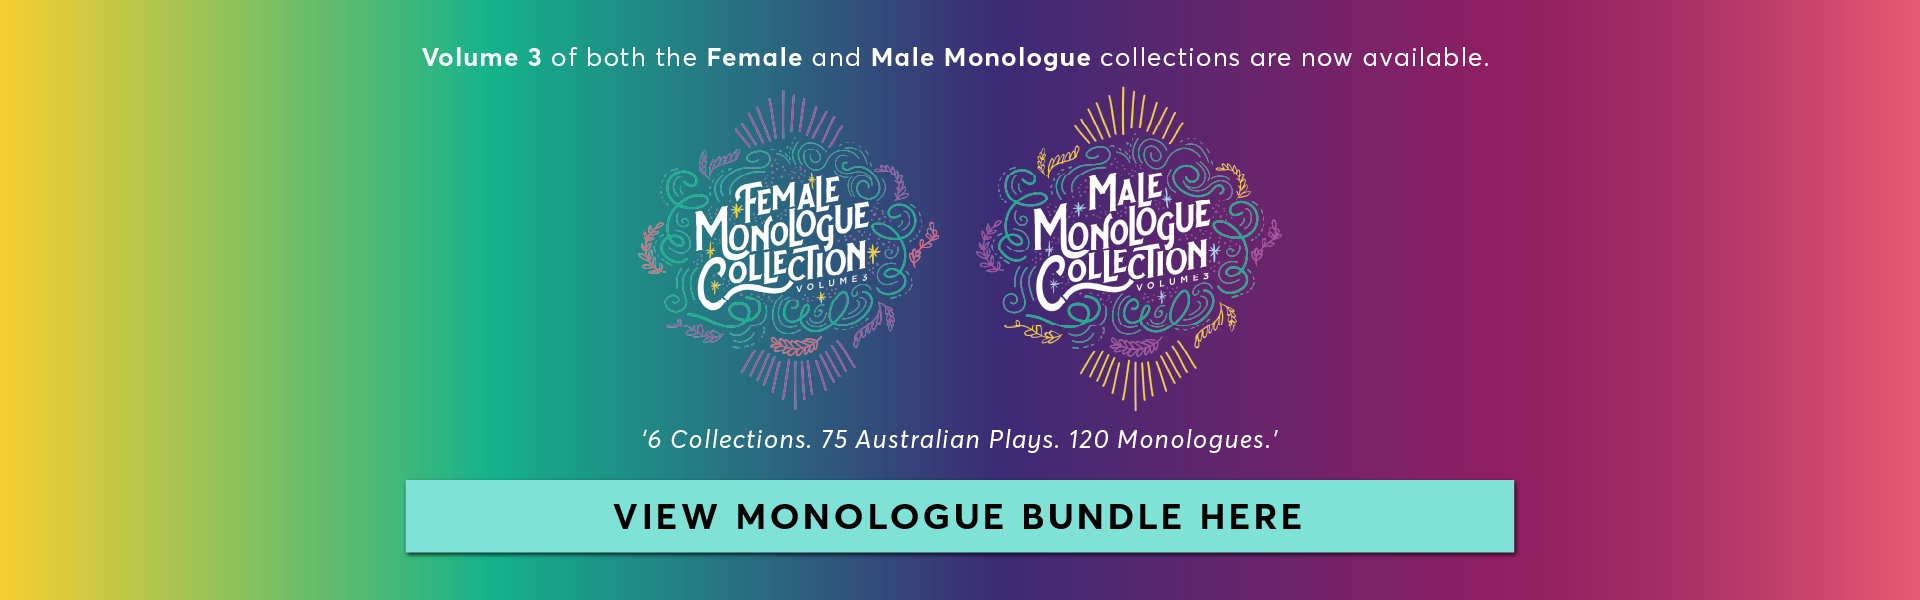 Female and Male Monologue Collection Bundle